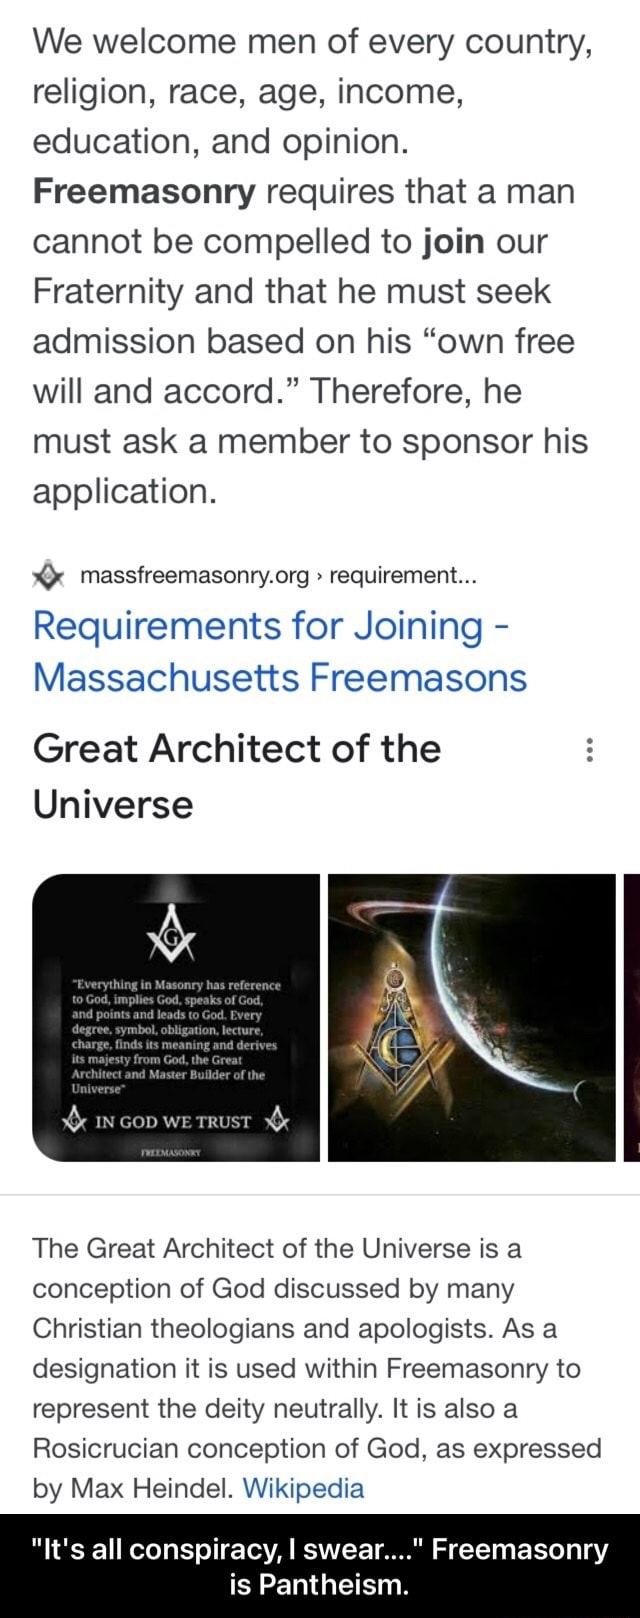 We welcome men of every country, religion, race, age, income, education, and opinion. Freemasonry requires that a man cannot be compelled to join our Fraternity and that he must seek admission based on his own free will and accord. Therefore, he must ask a member to sponsor his application. requirement Requirements for Joining Mas Great Architect of the Universe IN Gop we TRUST The Great Architect of the Universe is a conception of God discussed by many Christian theologians and apologists. As a designation it is used within Freemasonry to represent the deity neutrally. It is also a Rosicrucian conception of God, as expressed by Max Heindel. Wikipedia It's all conspiracy, I swear Freemasonry is Pantheism. It's all conspiracy, I swear Freemasonry is Pantheism memes